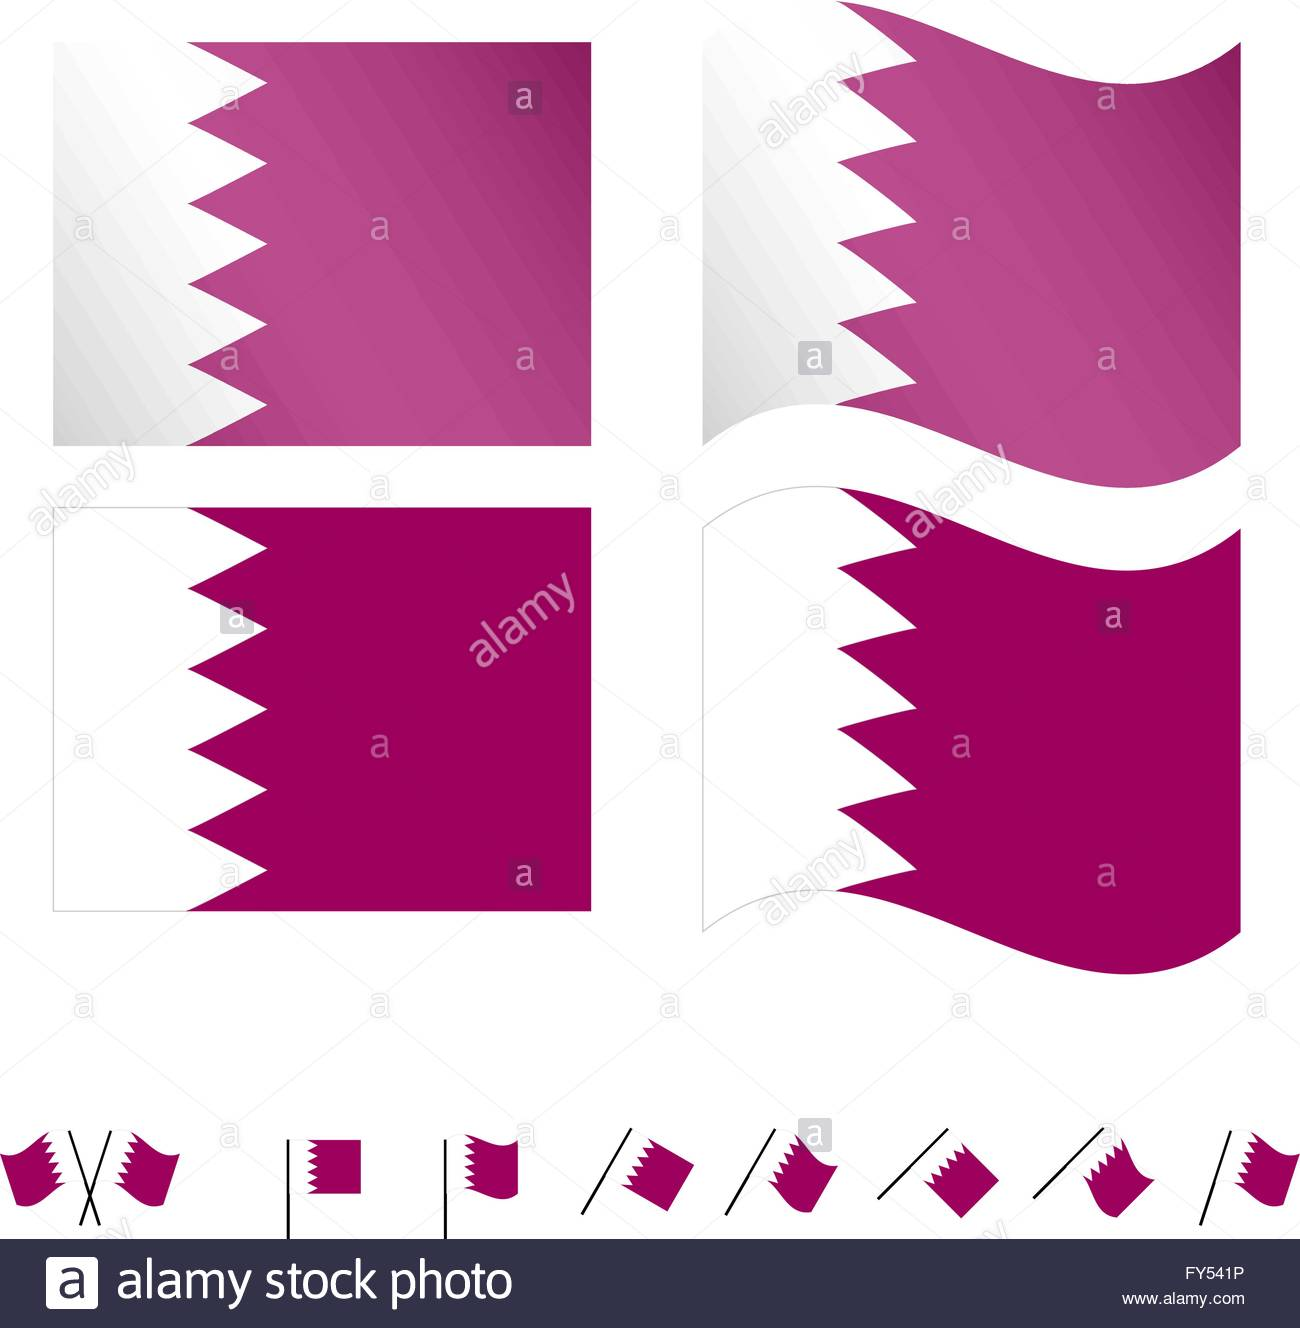 Qatar Flags EPS 10 - Stock Image